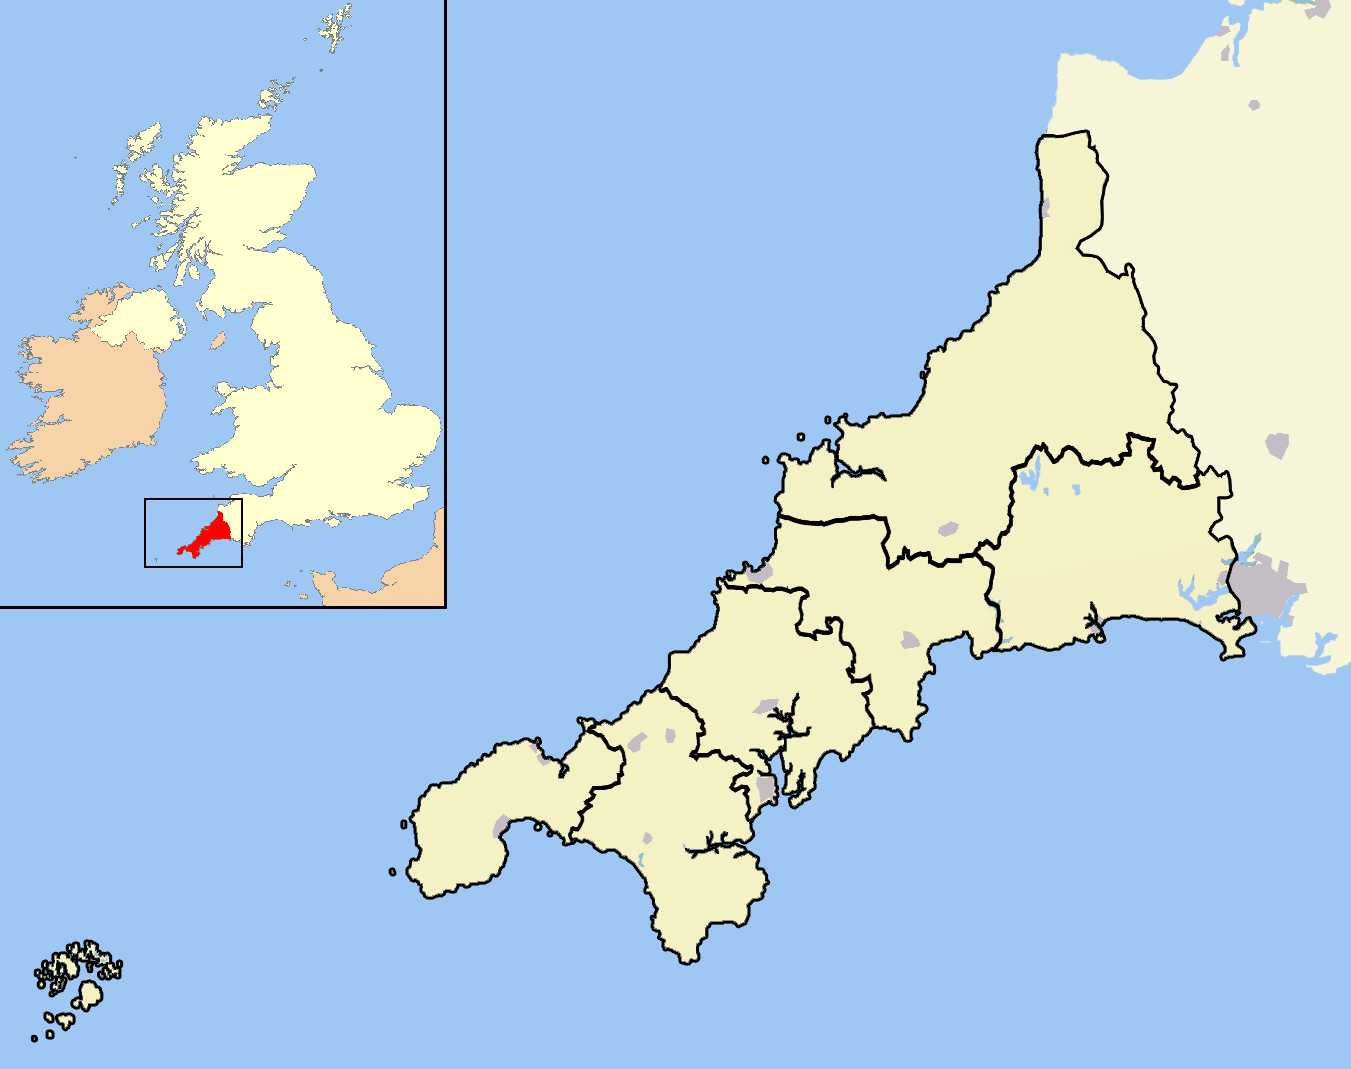 Cornwall Map Images File:cornwall Outline Map With